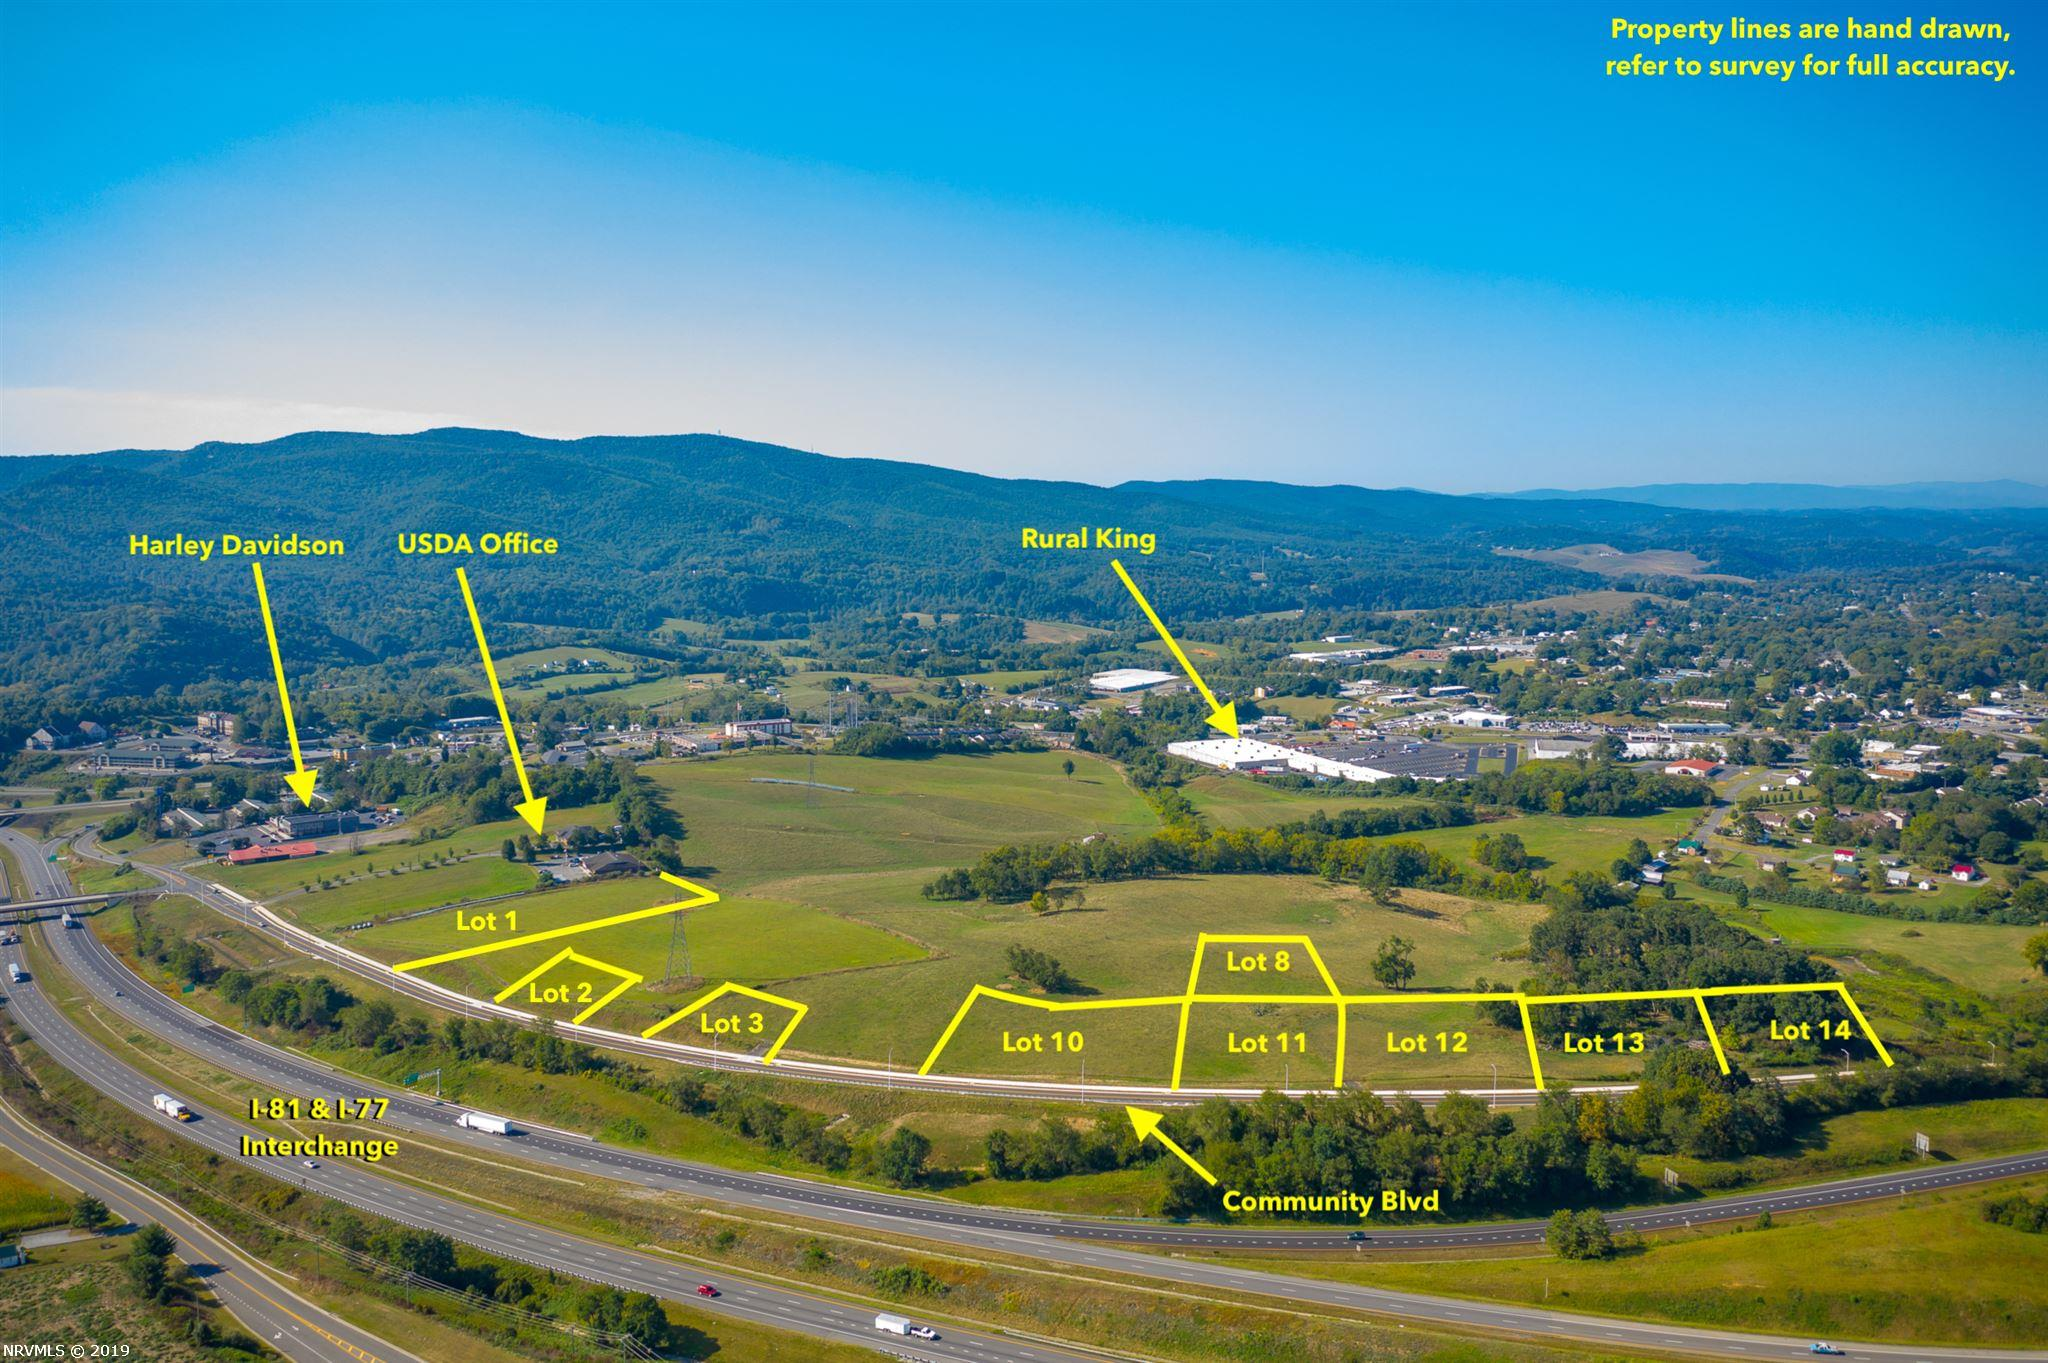 94 Acres  Community,  Wytheville, VA